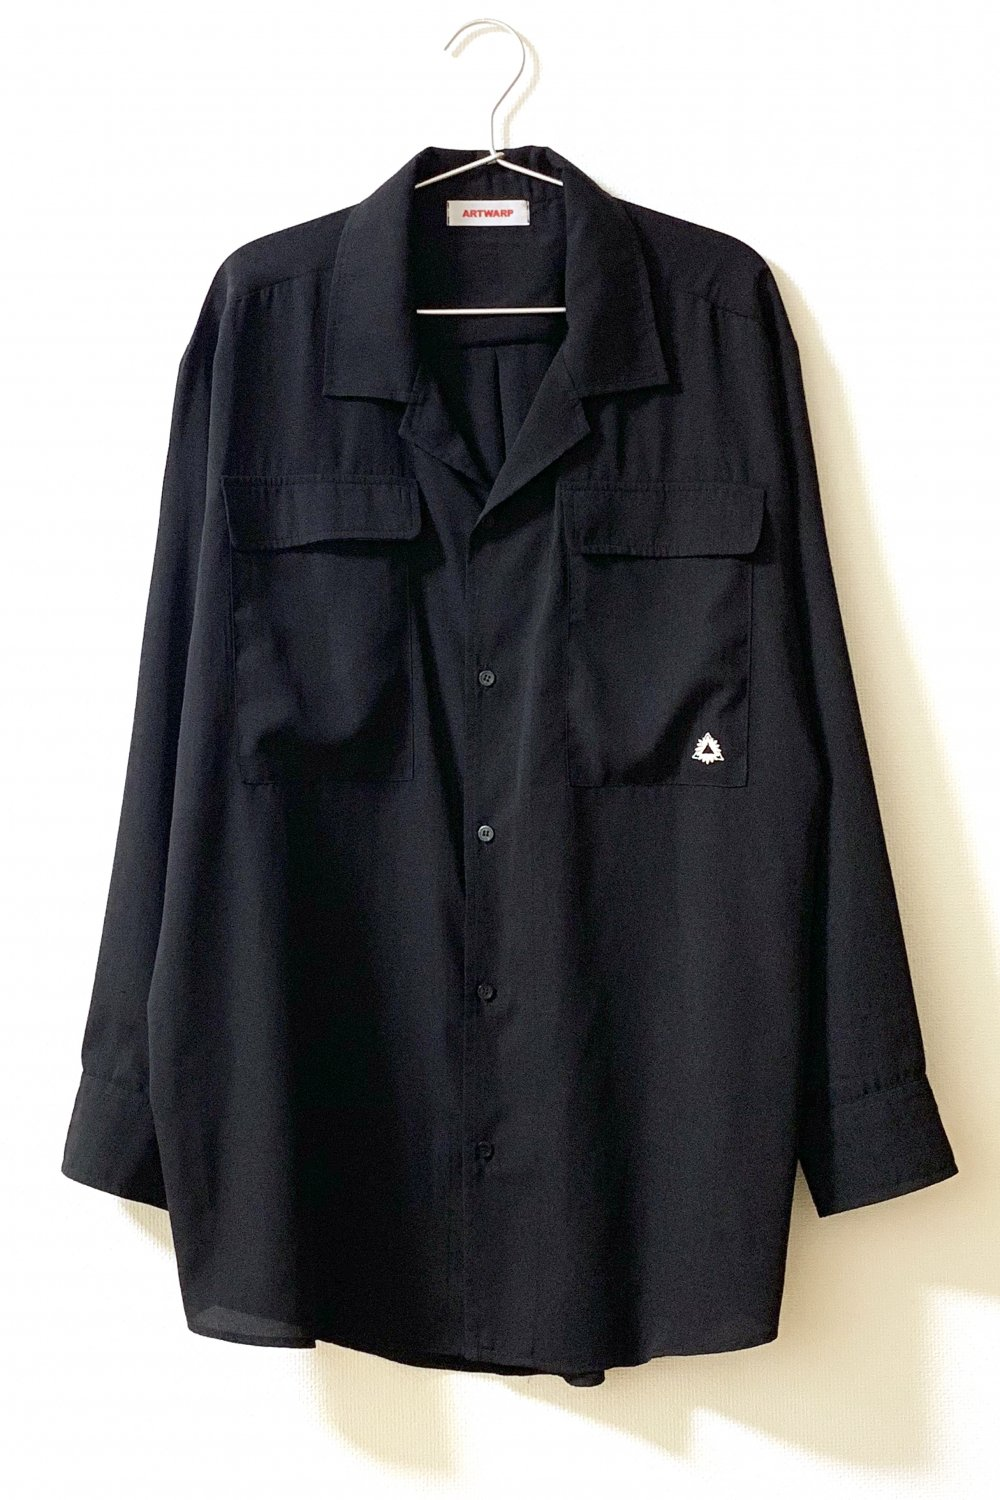 BIG WORK SHIRT <img class='new_mark_img2' src='https://img.shop-pro.jp/img/new/icons15.gif' style='border:none;display:inline;margin:0px;padding:0px;width:auto;' />